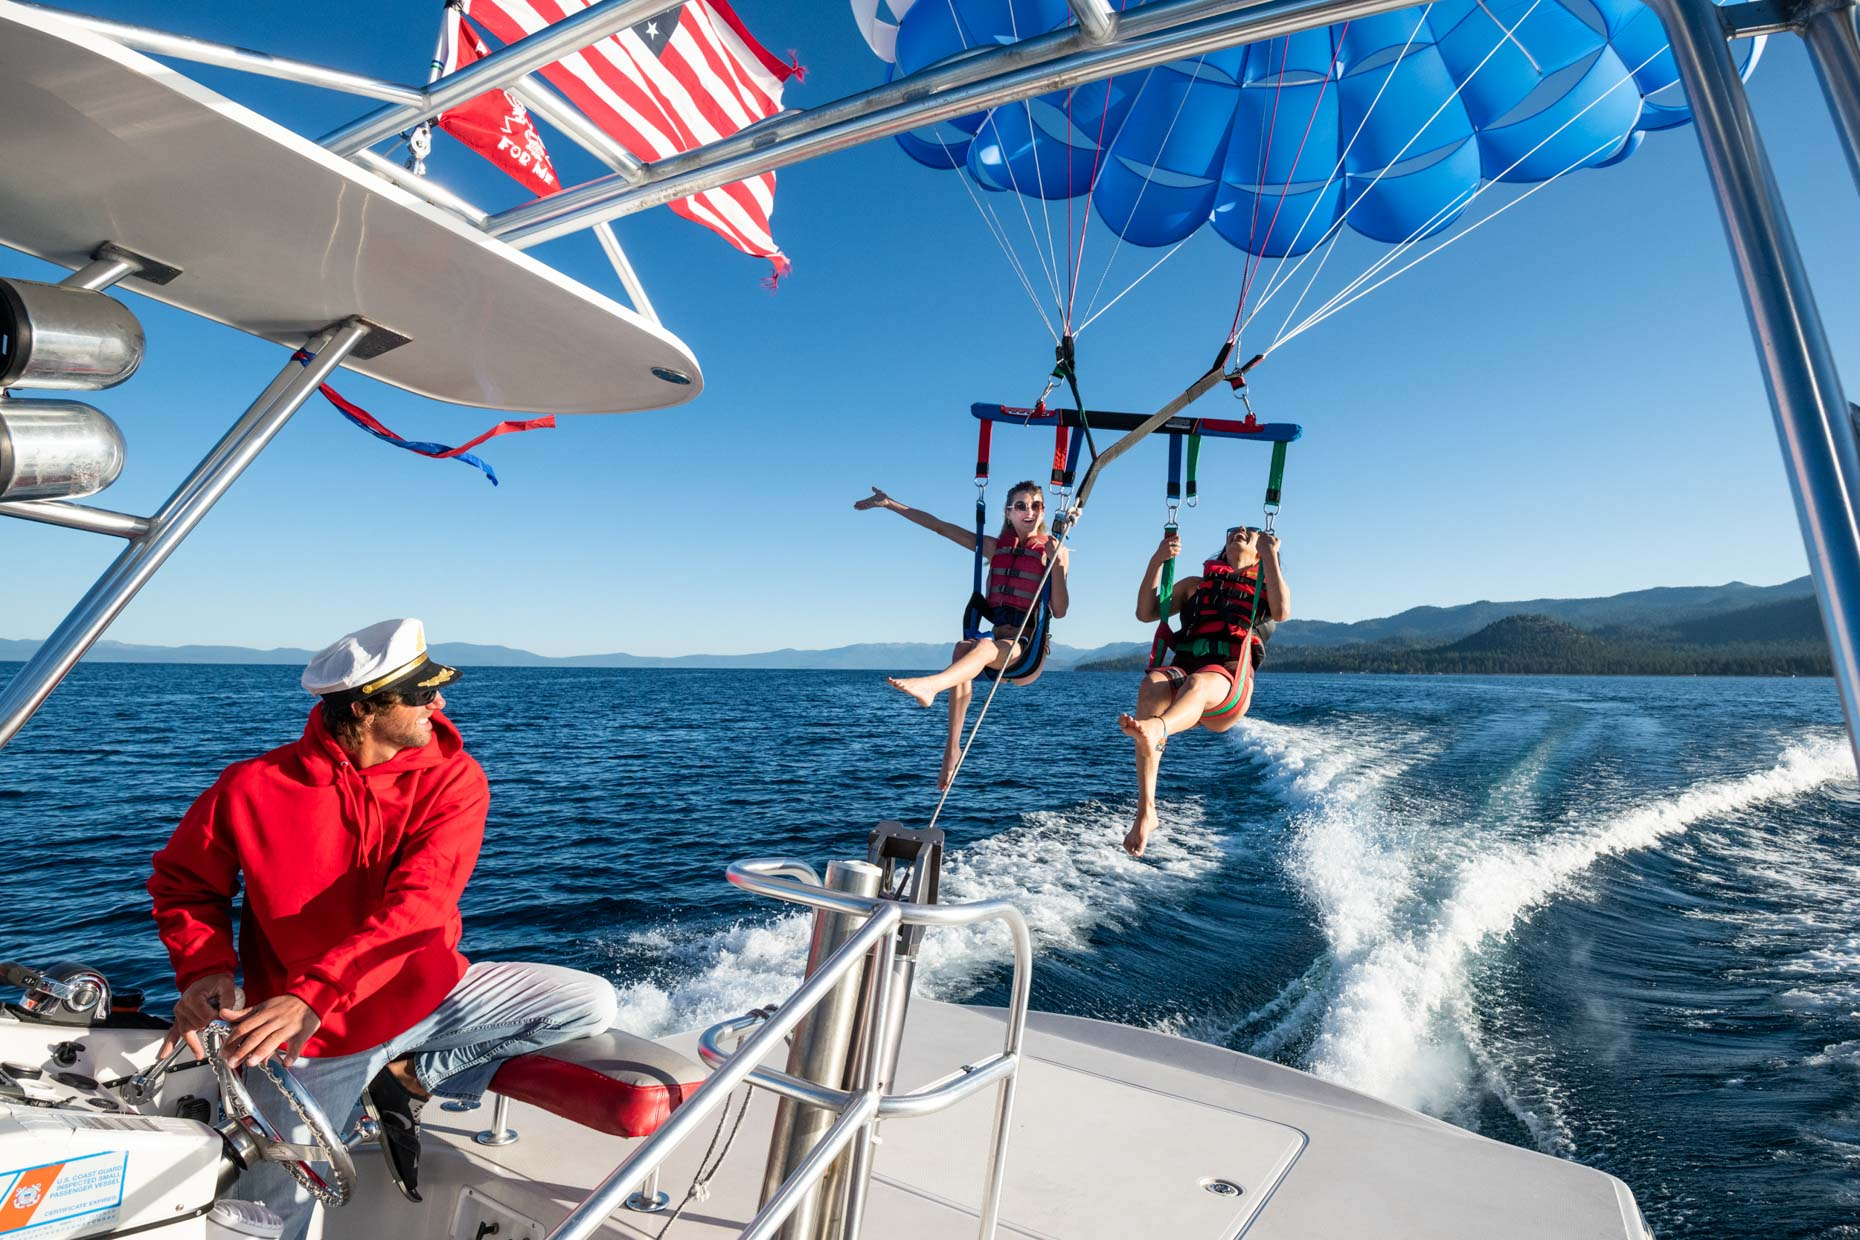 Parasailing - Lake Tahoe, California